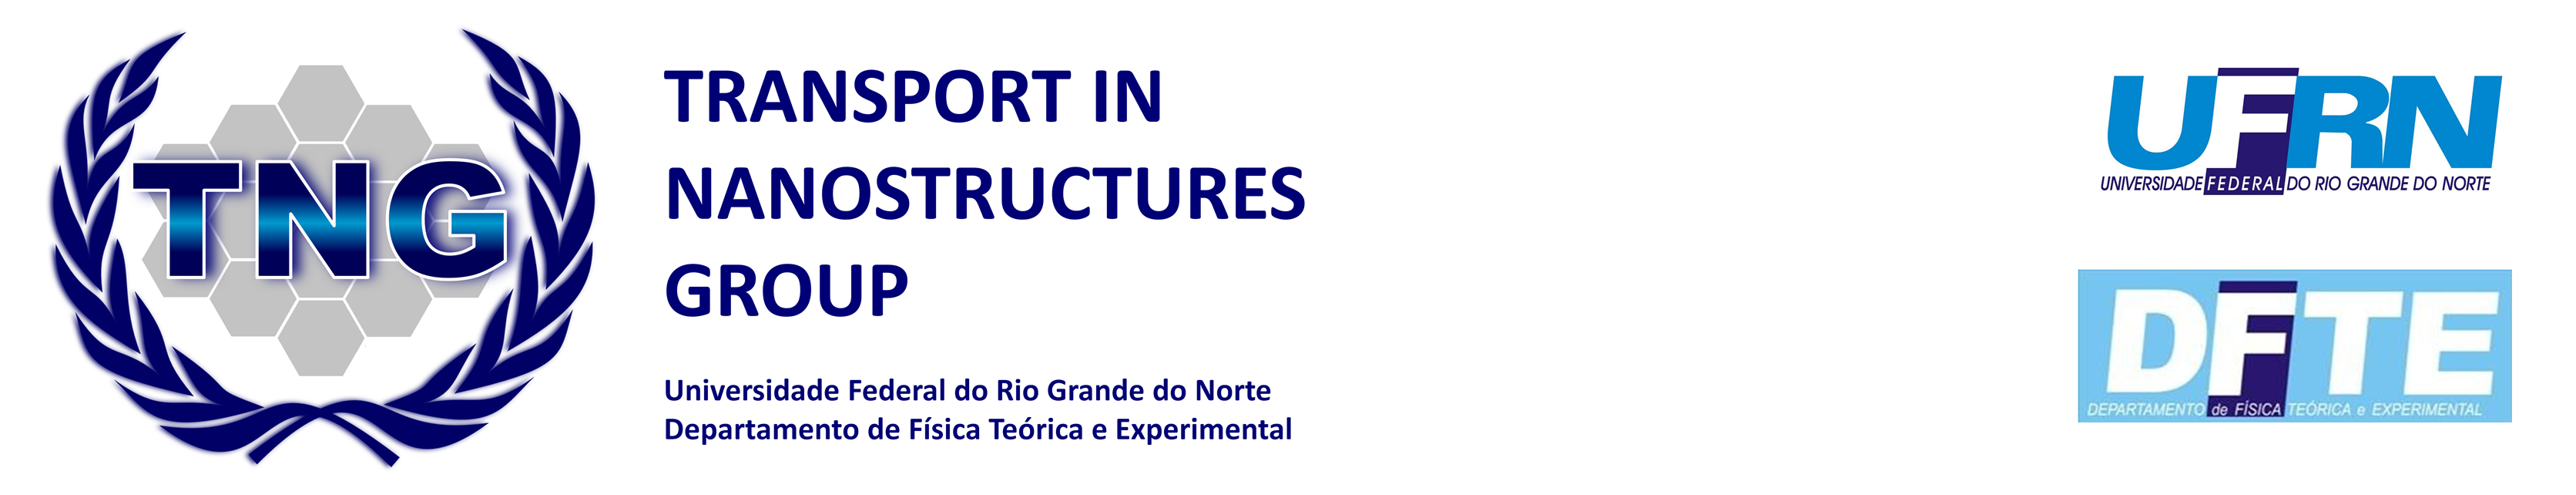 Transport in Nanostructures Group